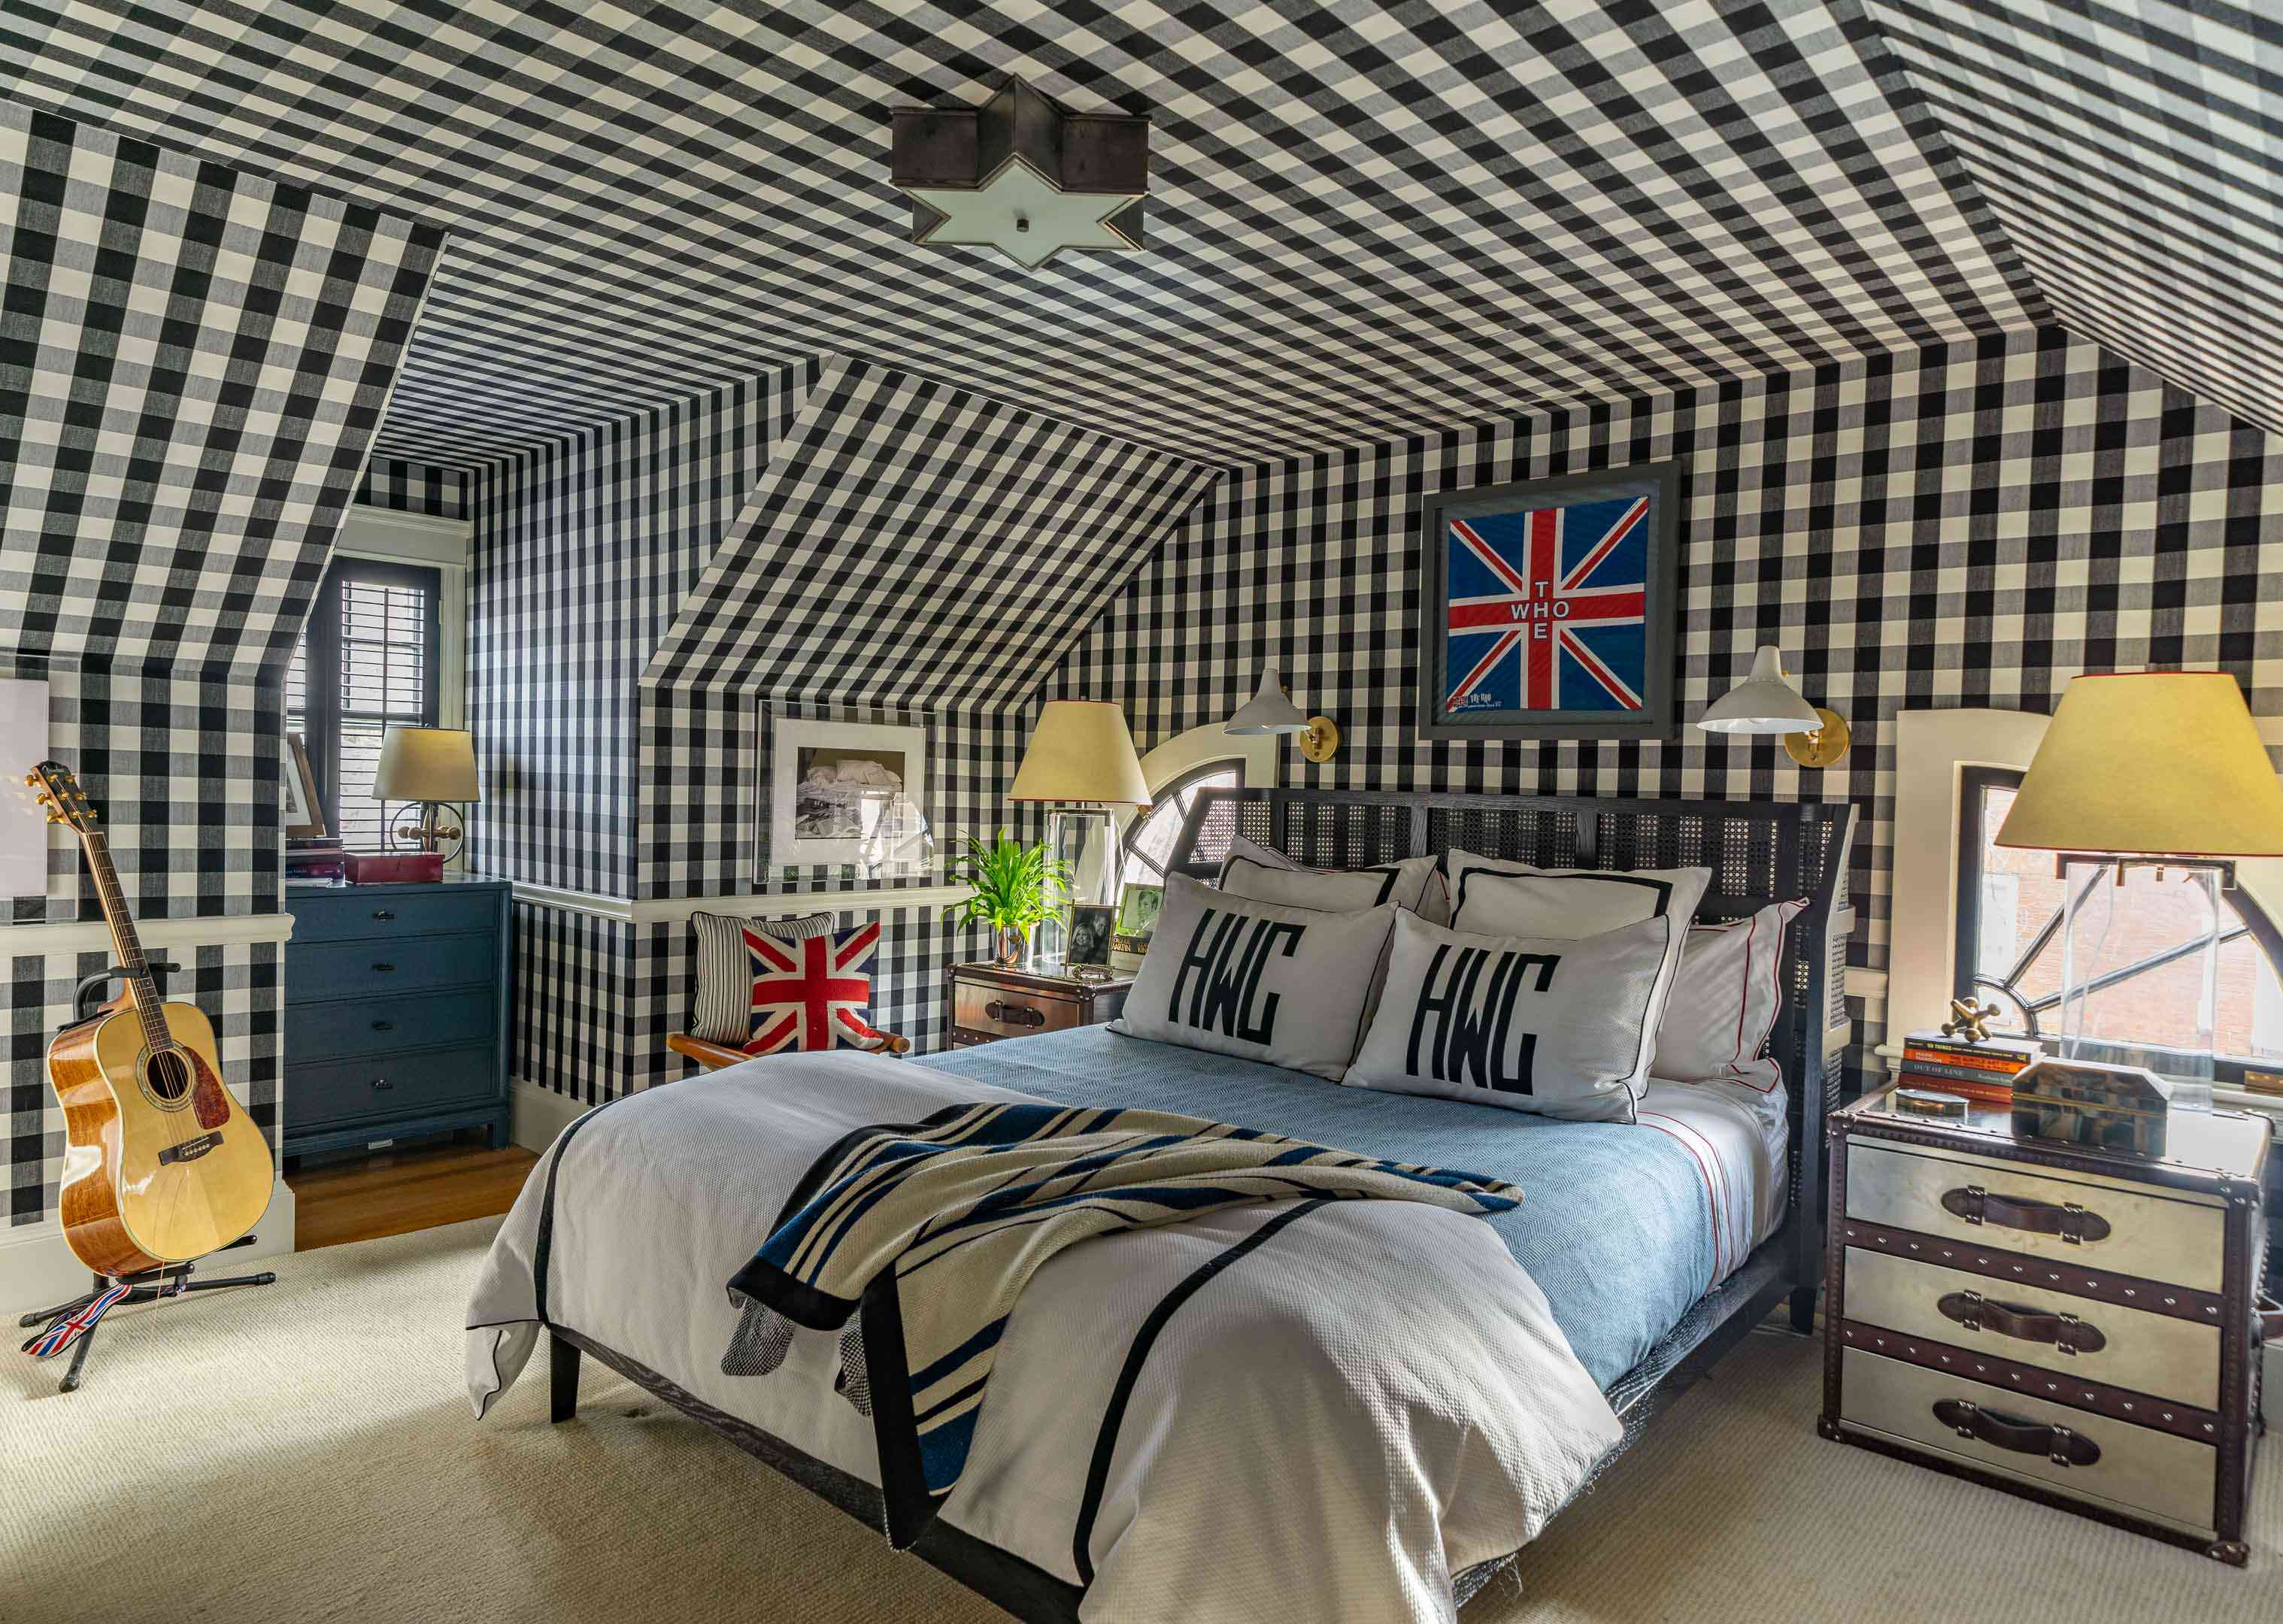 Bedroom with black and white gingham wallpaper.